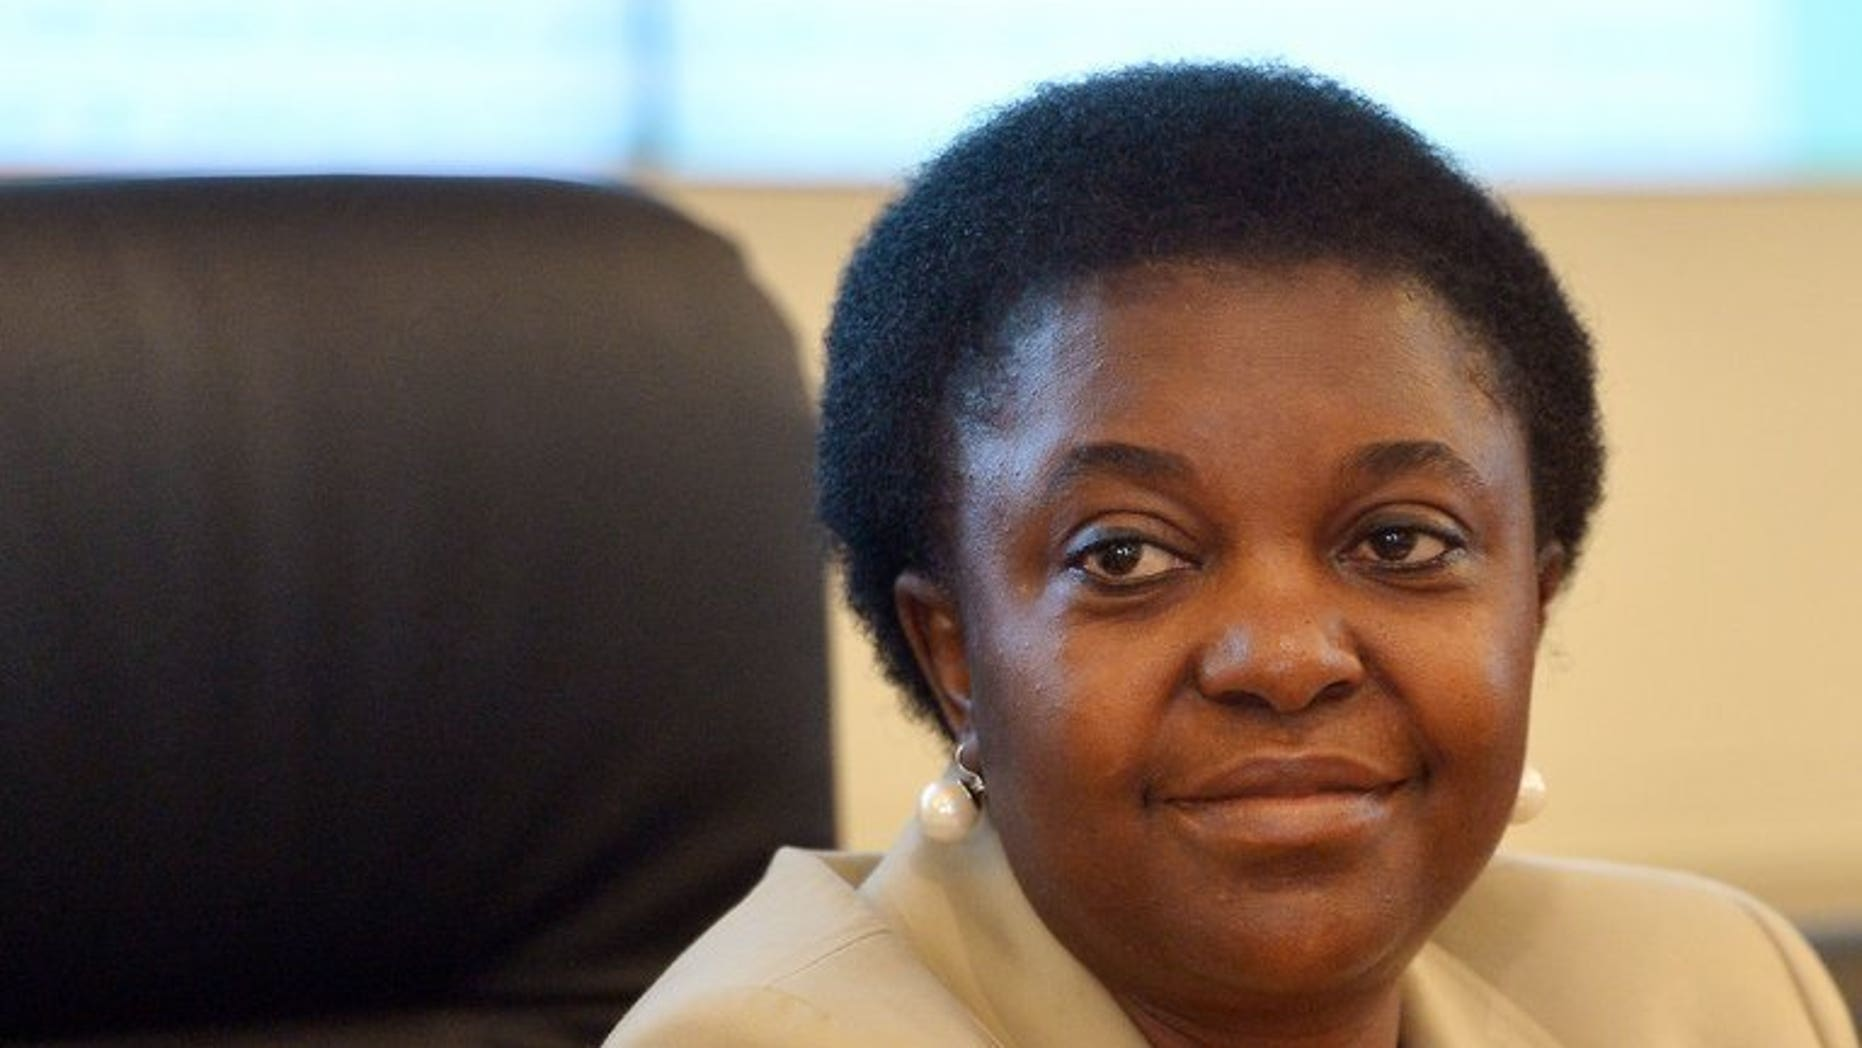 Italy's first first black cabinet minister Cecile Kyenge pictured in Rome on July 16, 2013. Kyenge on Tuesday called for an end to racist insults from members of the anti-immigration Northern League party.